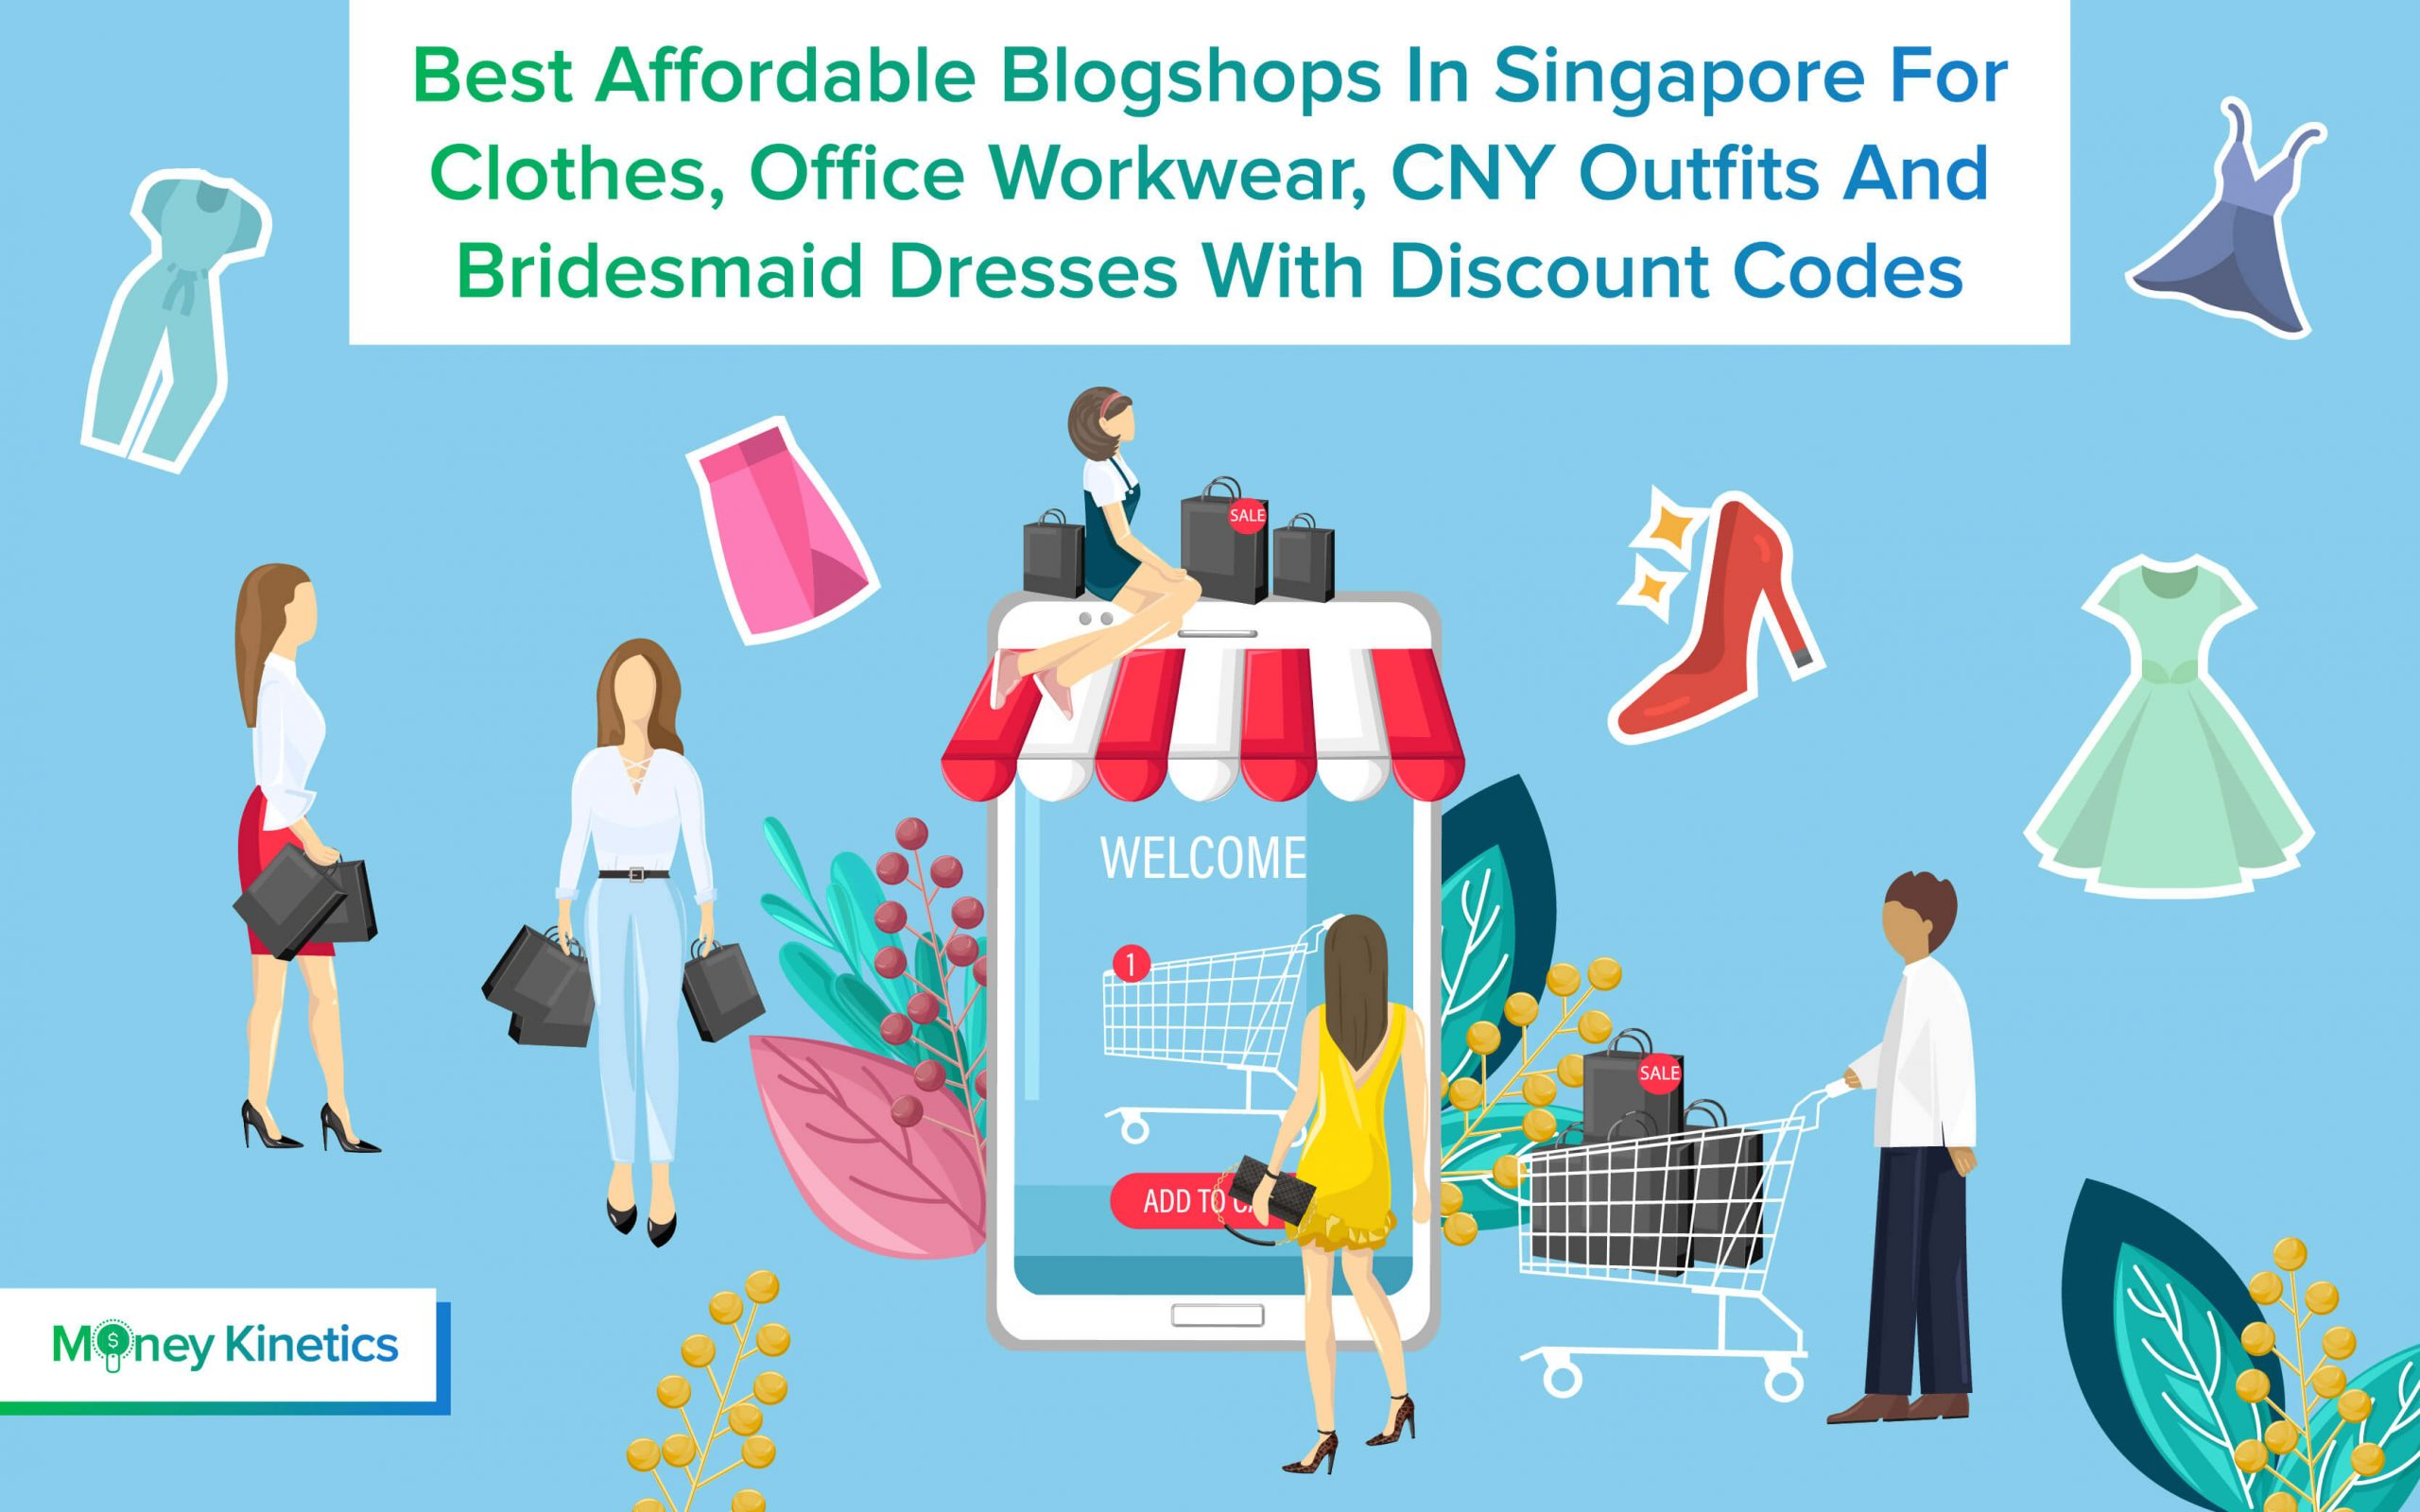 moneykinetics-Best Affordable Blogshops In Singapore For Clothes, Office Workwear, CNY Outfits And Bridesmaid Dresses With Discount Codes